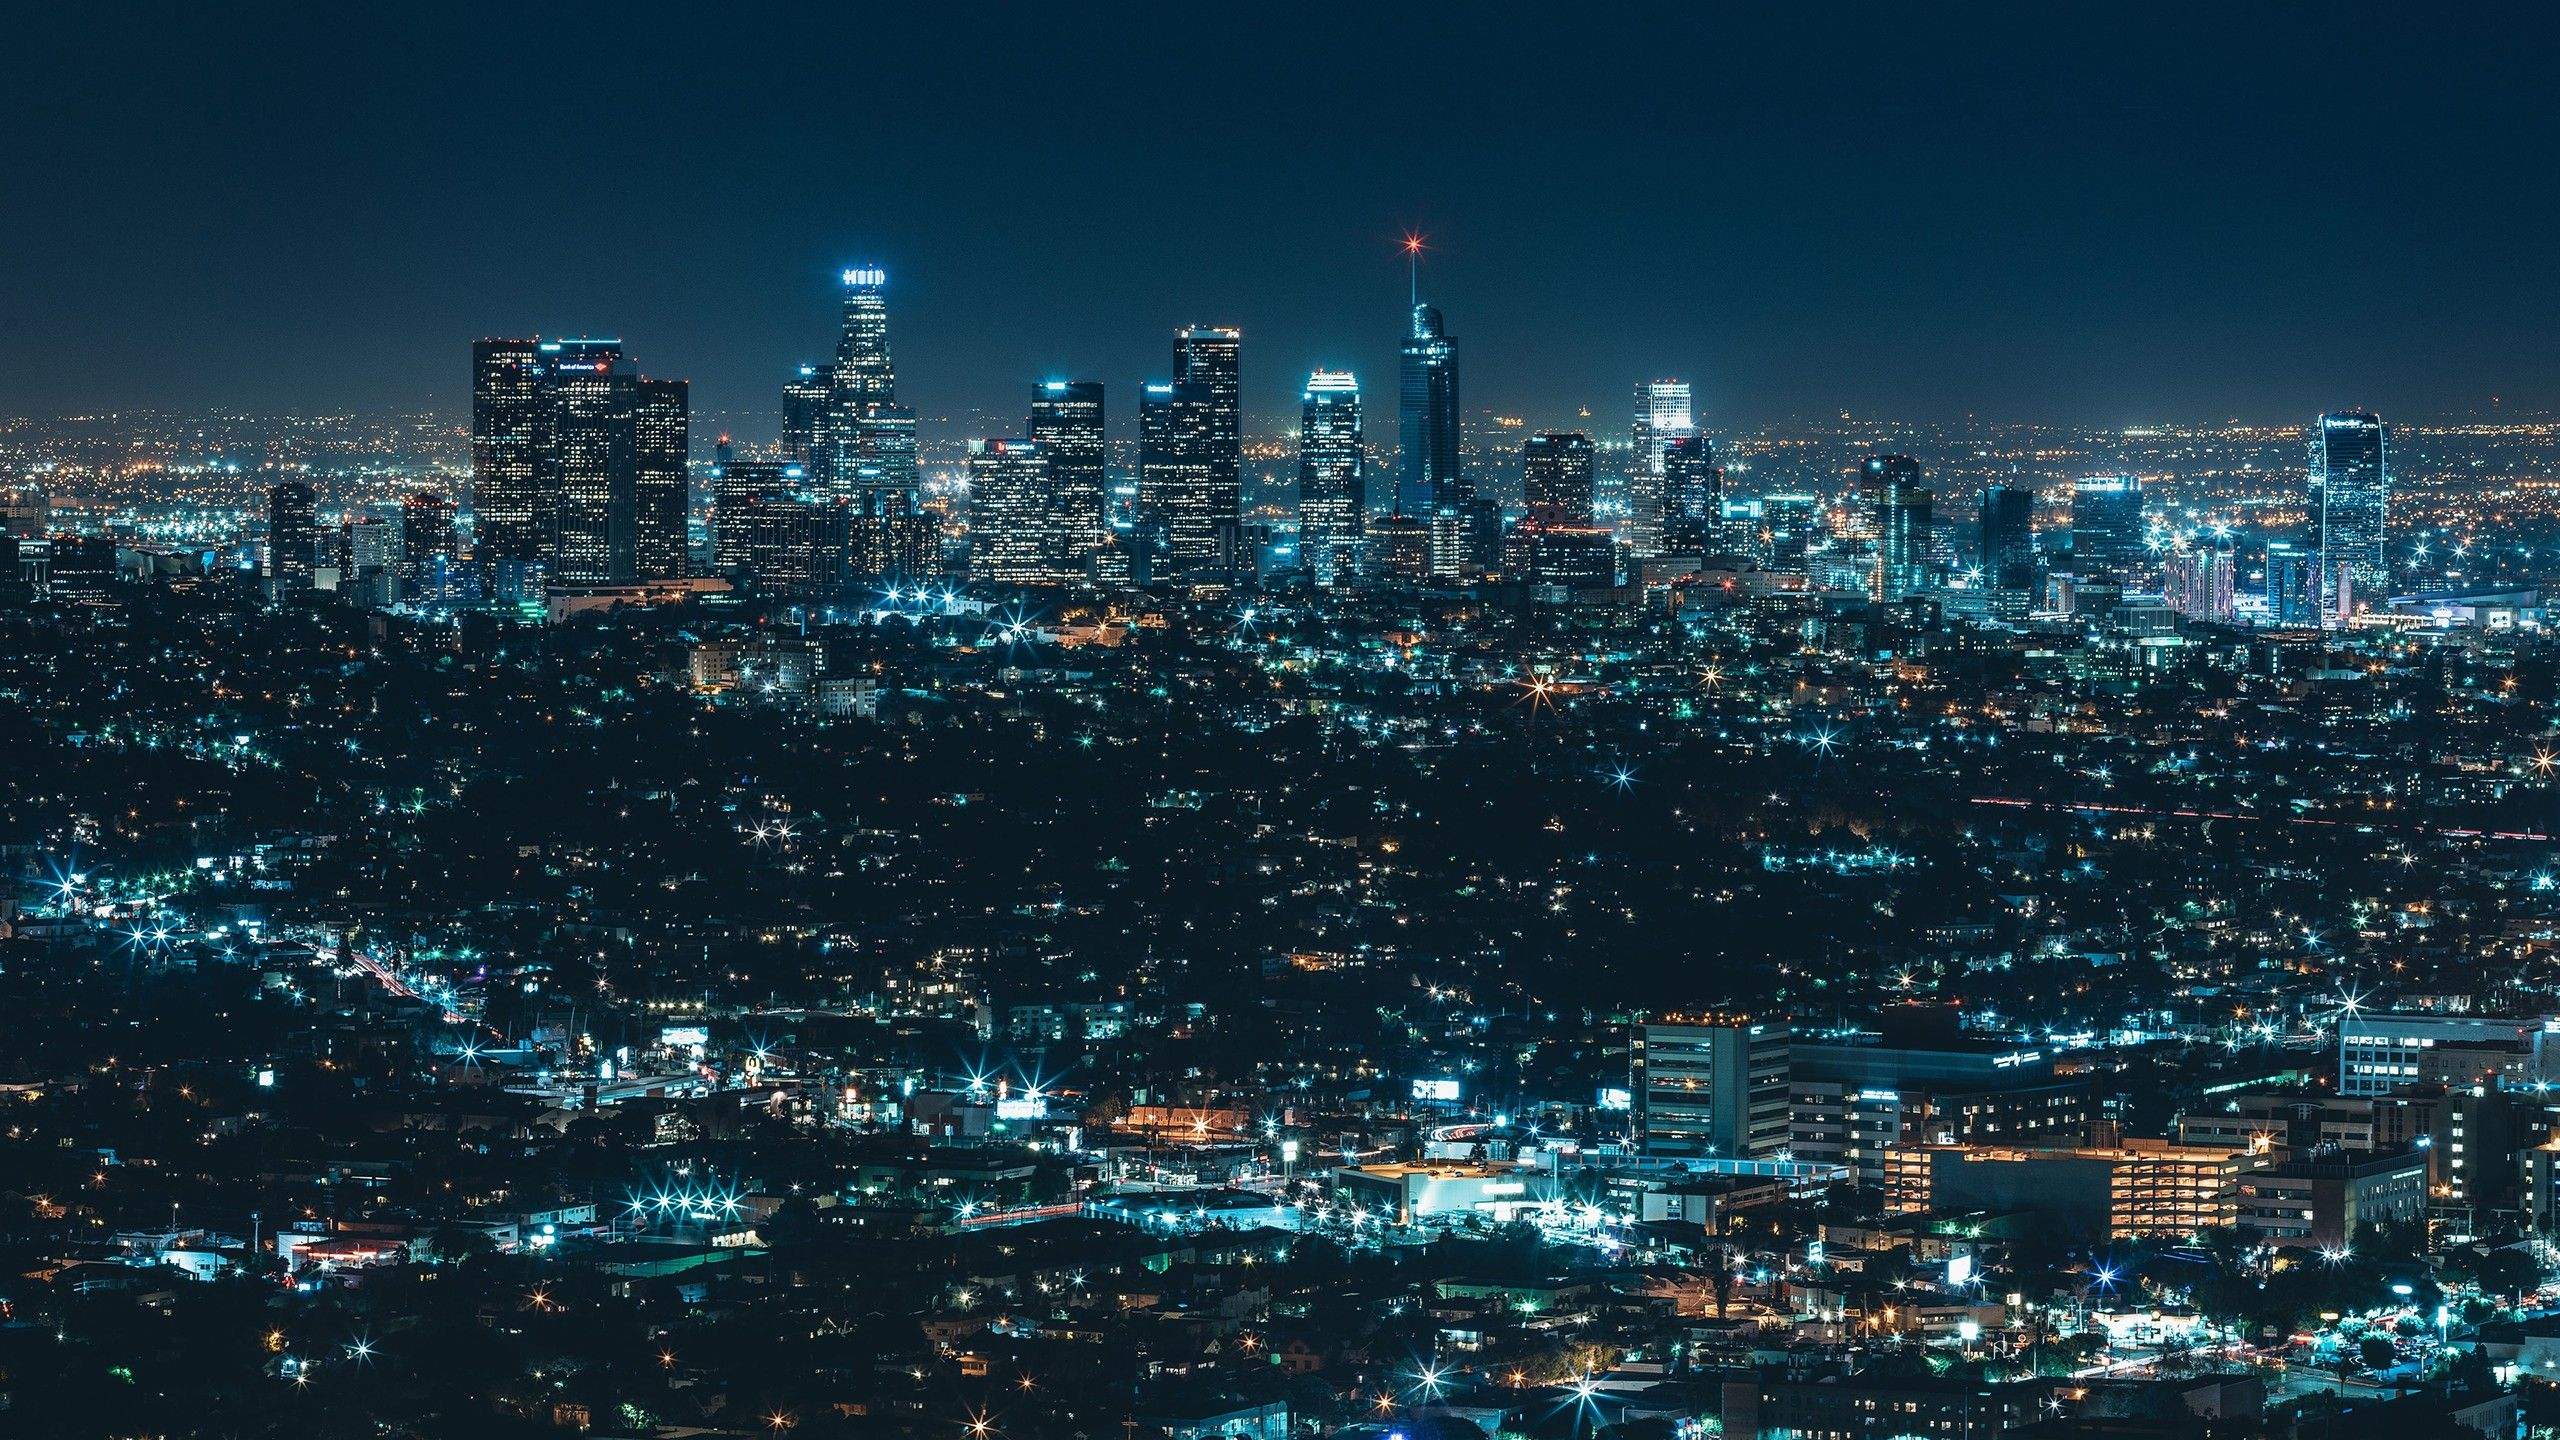 Los Angeles Nightscape Photo Credit To Thomas Frejek 2560 X 1440 4k Desktop Wallpapers City Wallpaper Desktop Wallpapers Backgrounds